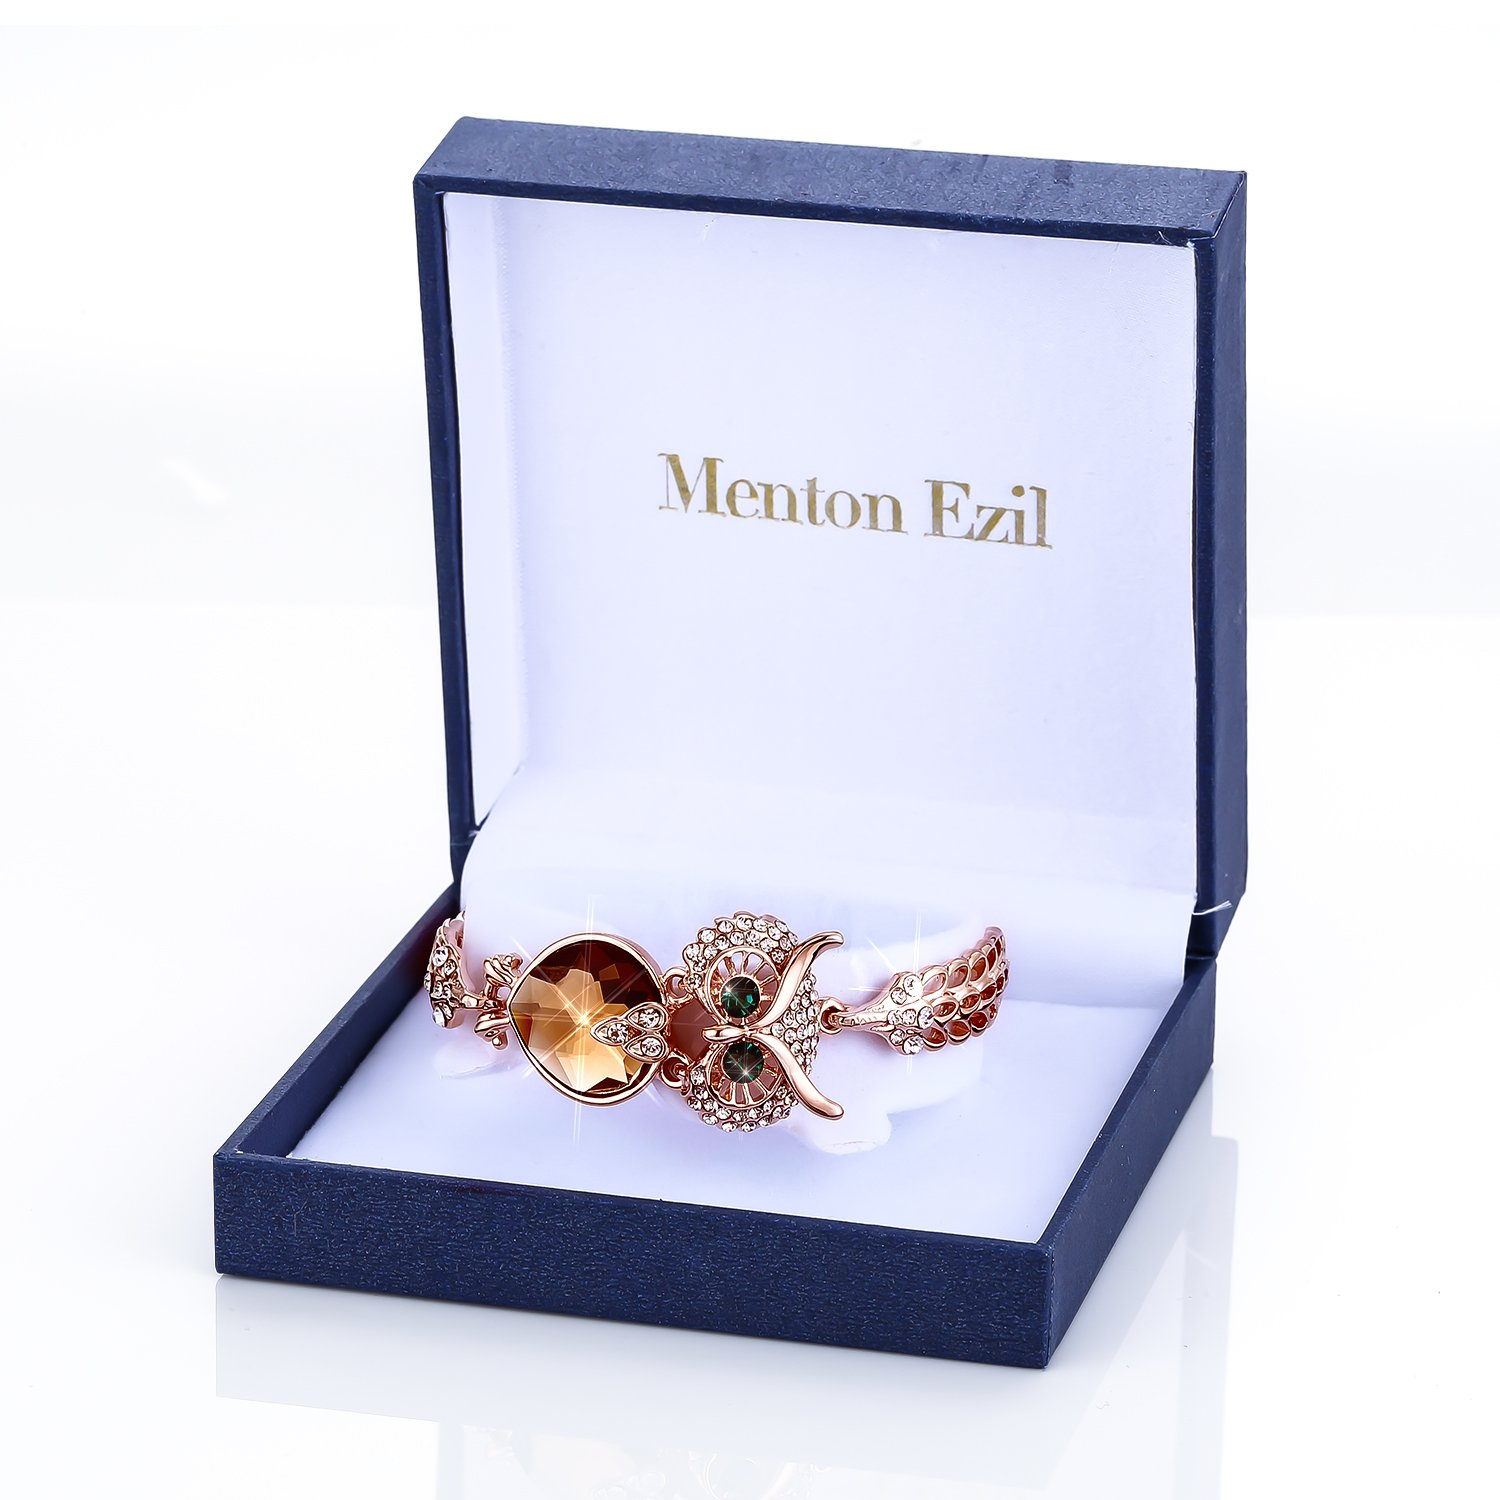 Menton Ezil Lucky Owl Bracelets With Turquoise Jewelry Charms Antique Golden Rhinestone Crystal for Womens Girls Gifts by Menton Ezil (Image #6)